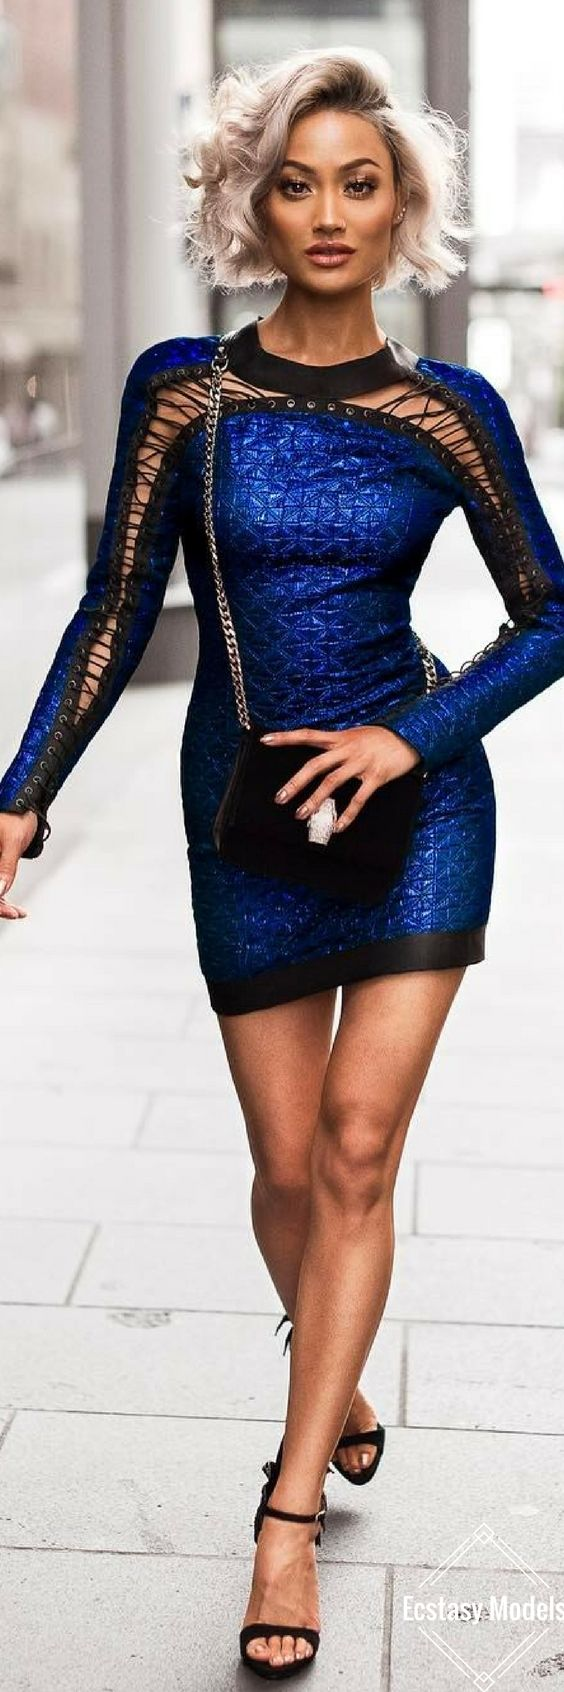 Royal Blue Balmain dress // Fashion Look by Micah Gianneli